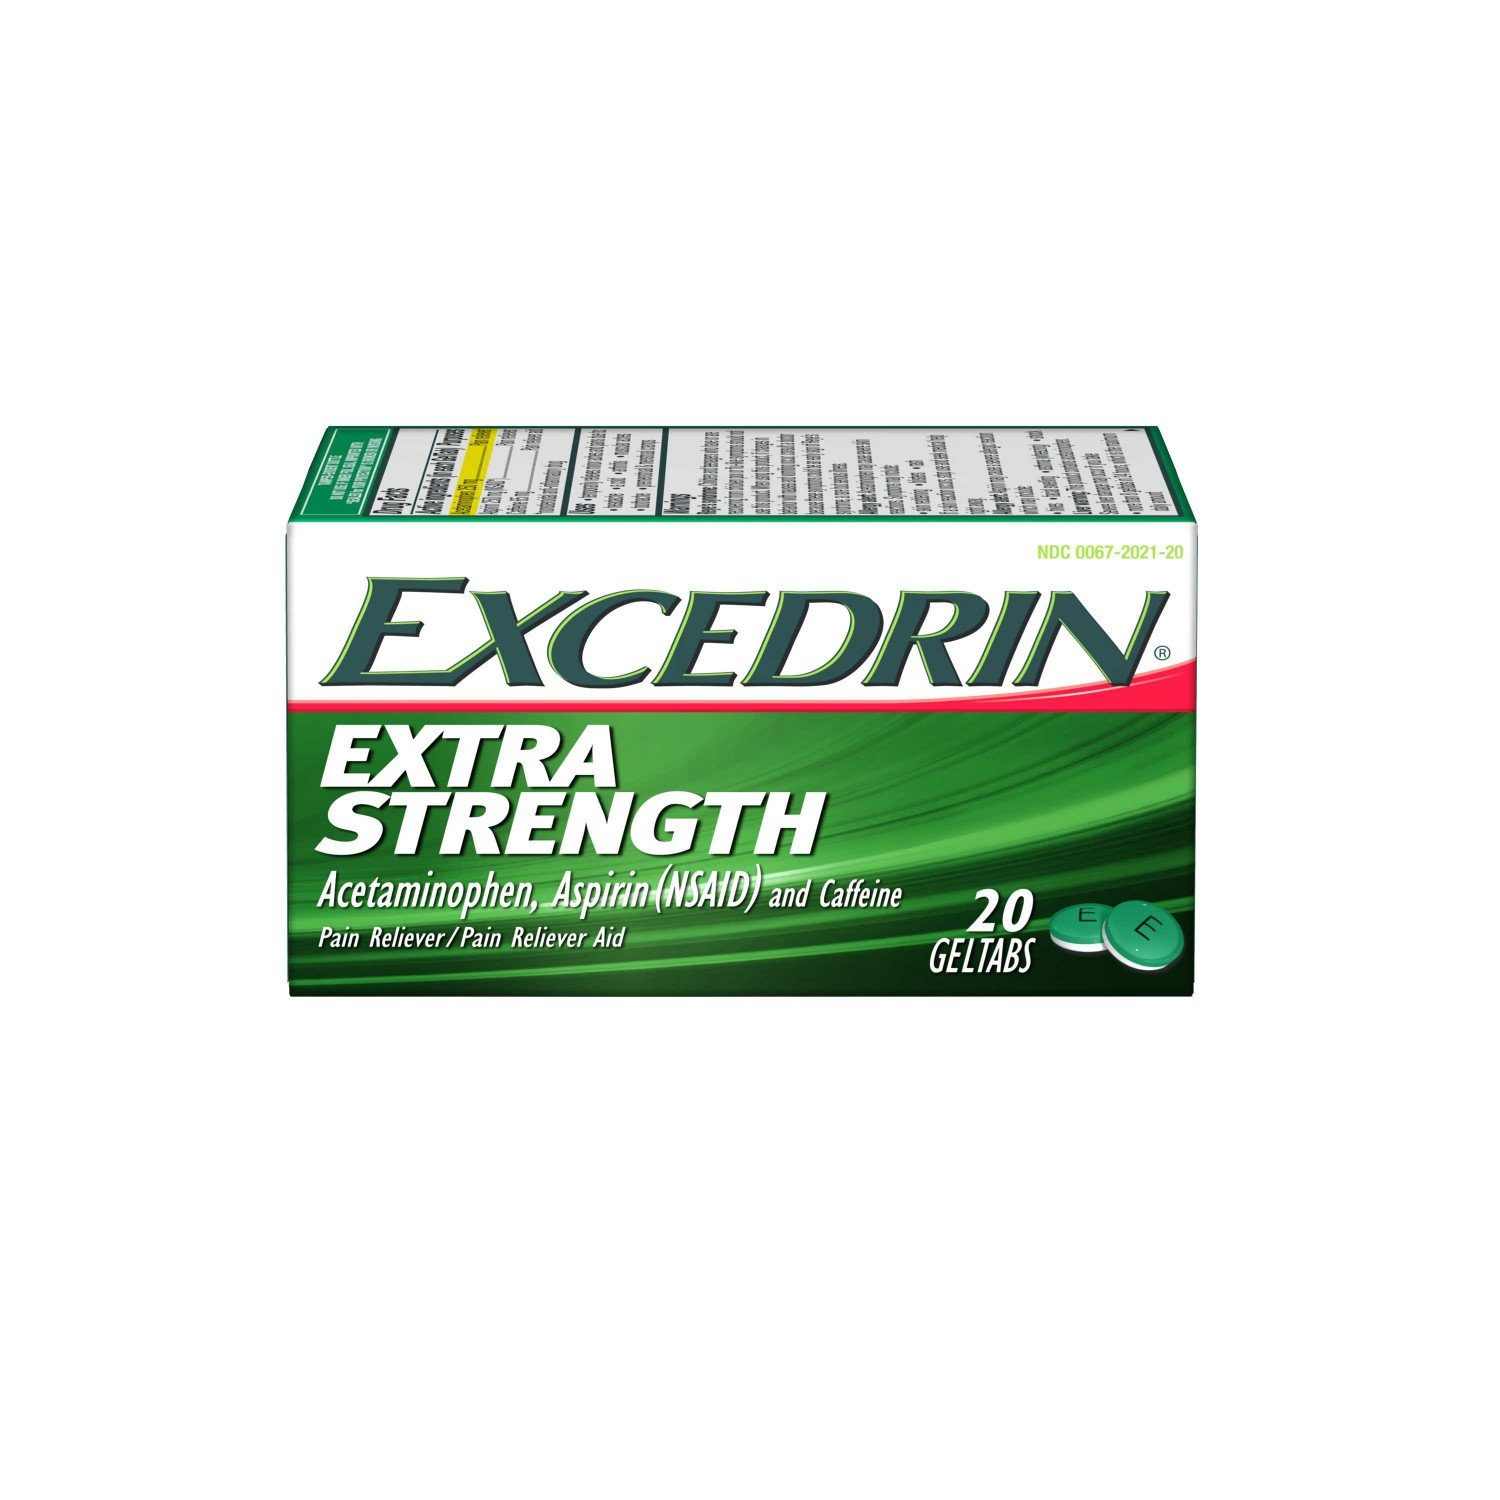 Excedrin Extra Strength Geltabs for Headache Pain Relief, 20 count